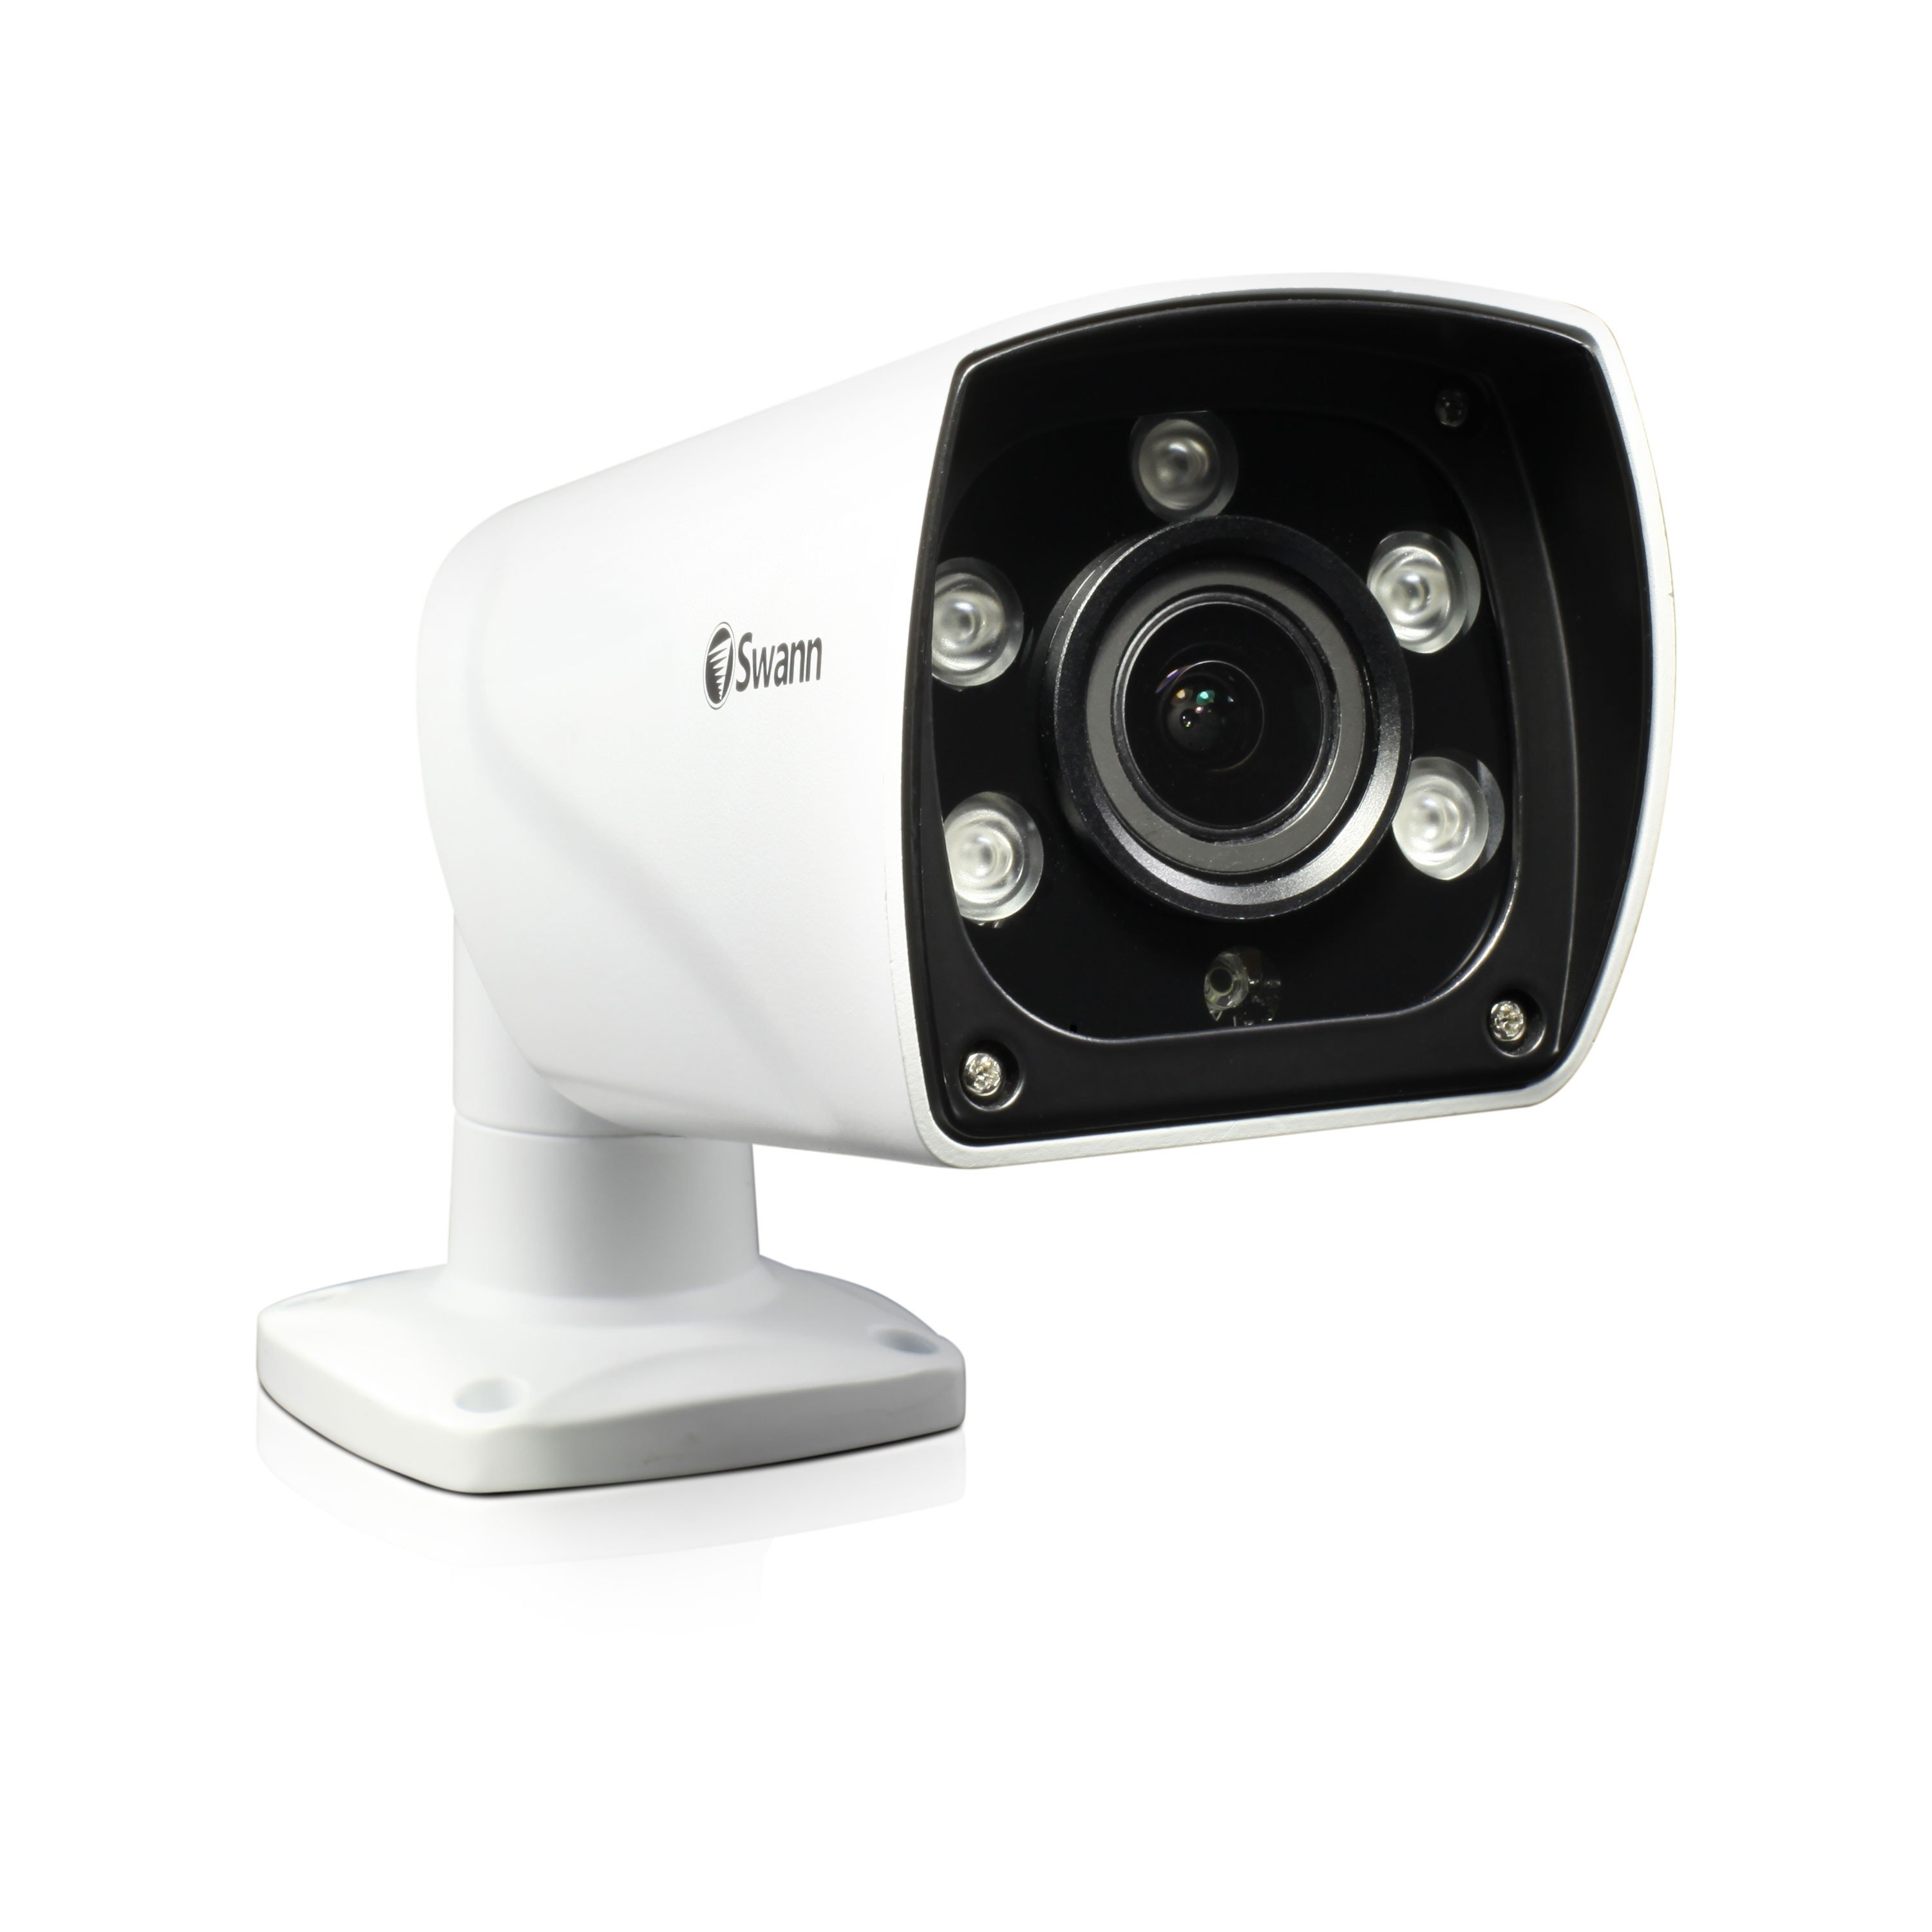 SWPRO-1080ZLB Swann Outdoor Security Camera: 1080p Full HD Bullet with 4 x Zoom Lens, Auto Focus & IR Night Vision - PRO-1080ZLB -